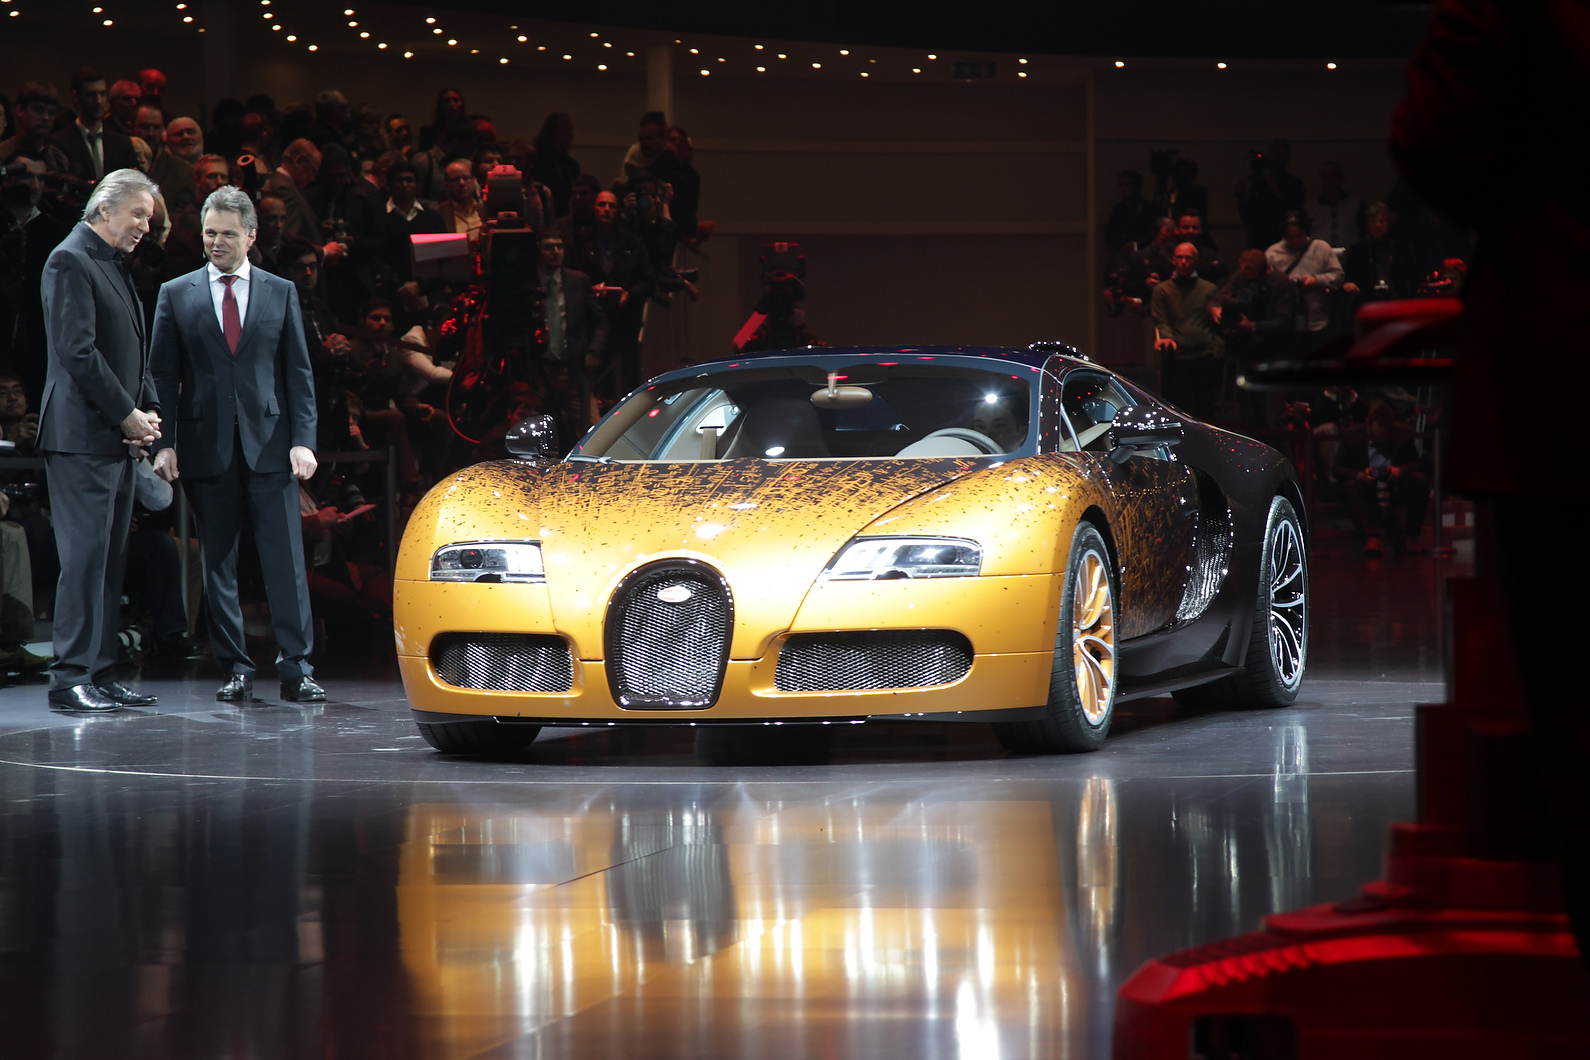 Bugatti revealed another special edition, this one designed by artist Bernar Venet